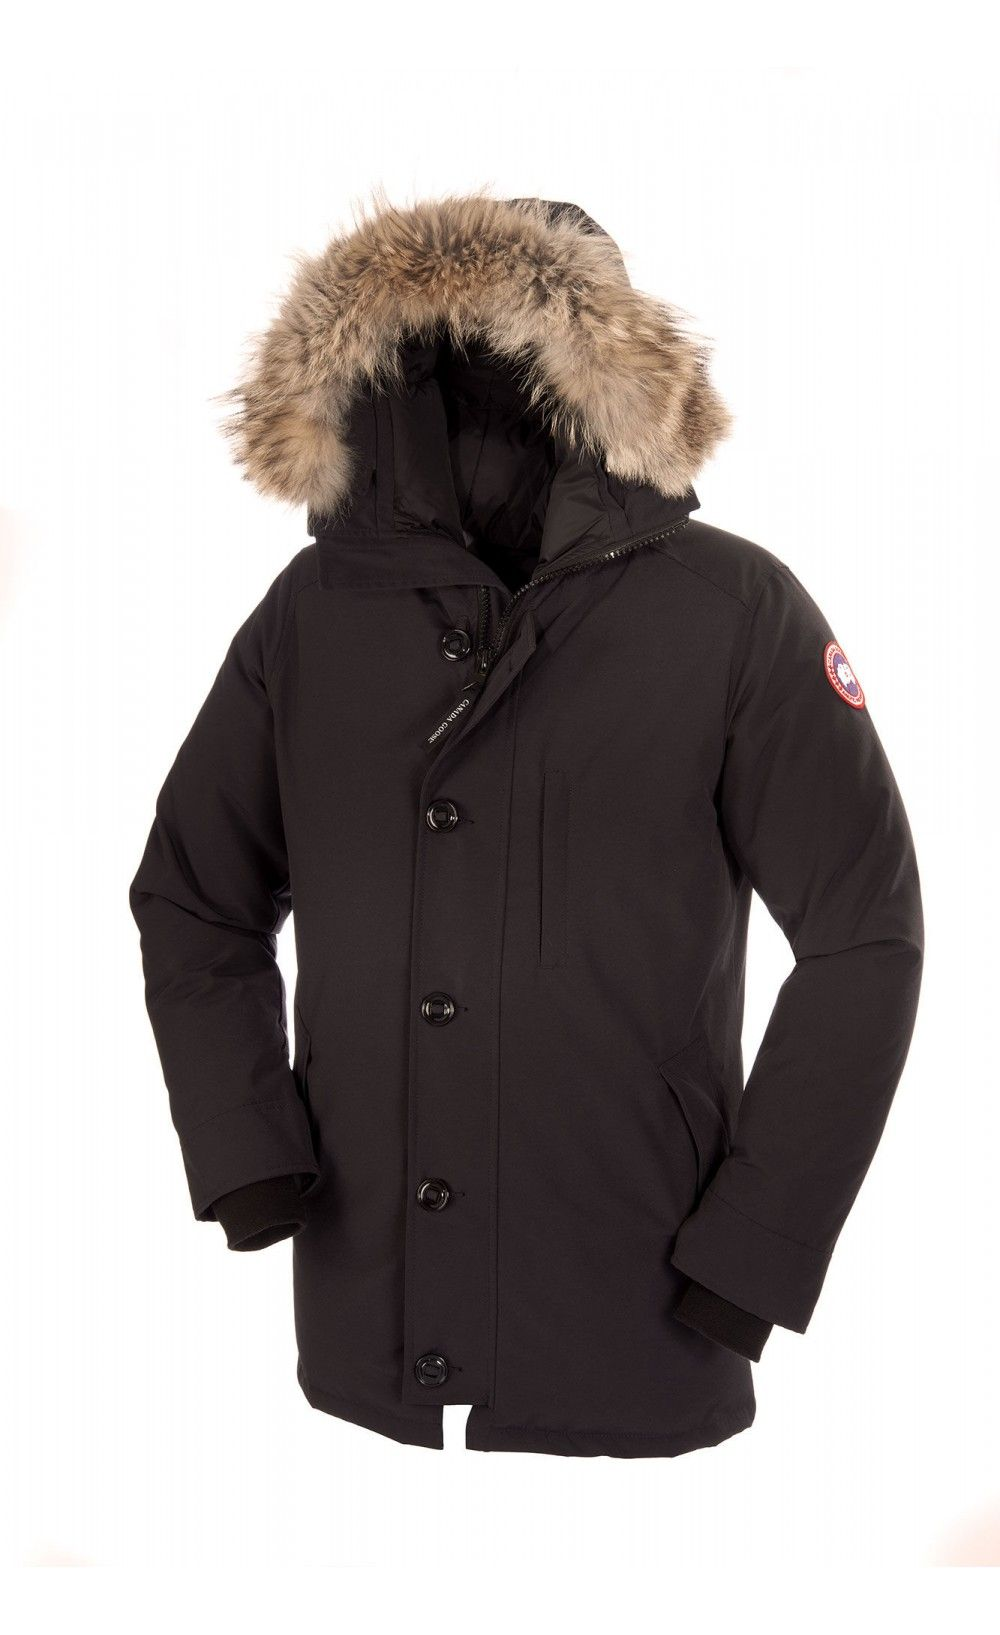 d0405e0bcae Canada Goose Chateau Parka Black Men - Canada Goose  parka  jackets   fashion  men  canadagoose  gift  lifestyle  winterfashion